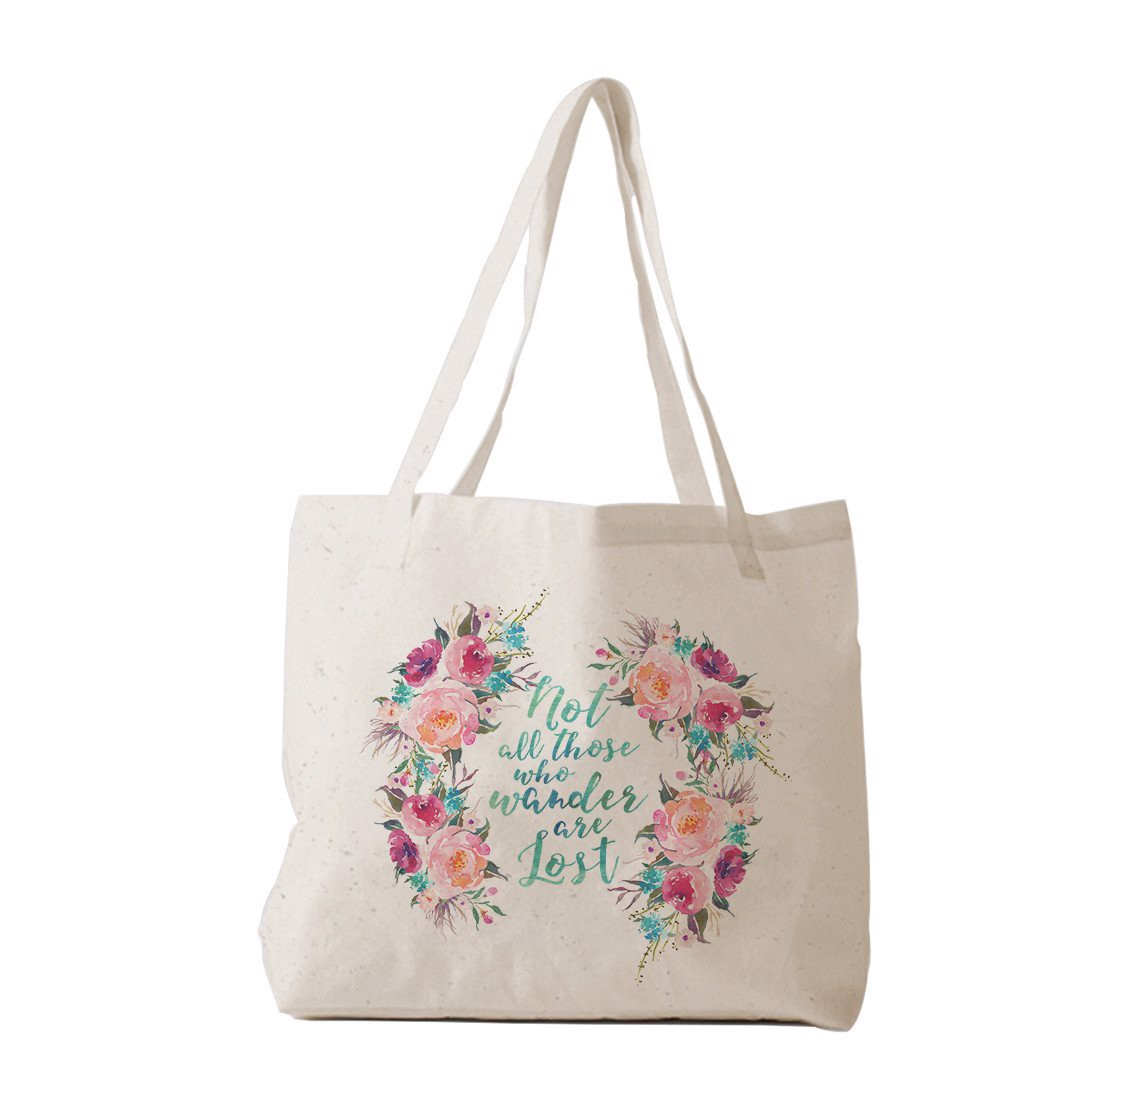 Tote Bag - Floral Quotes